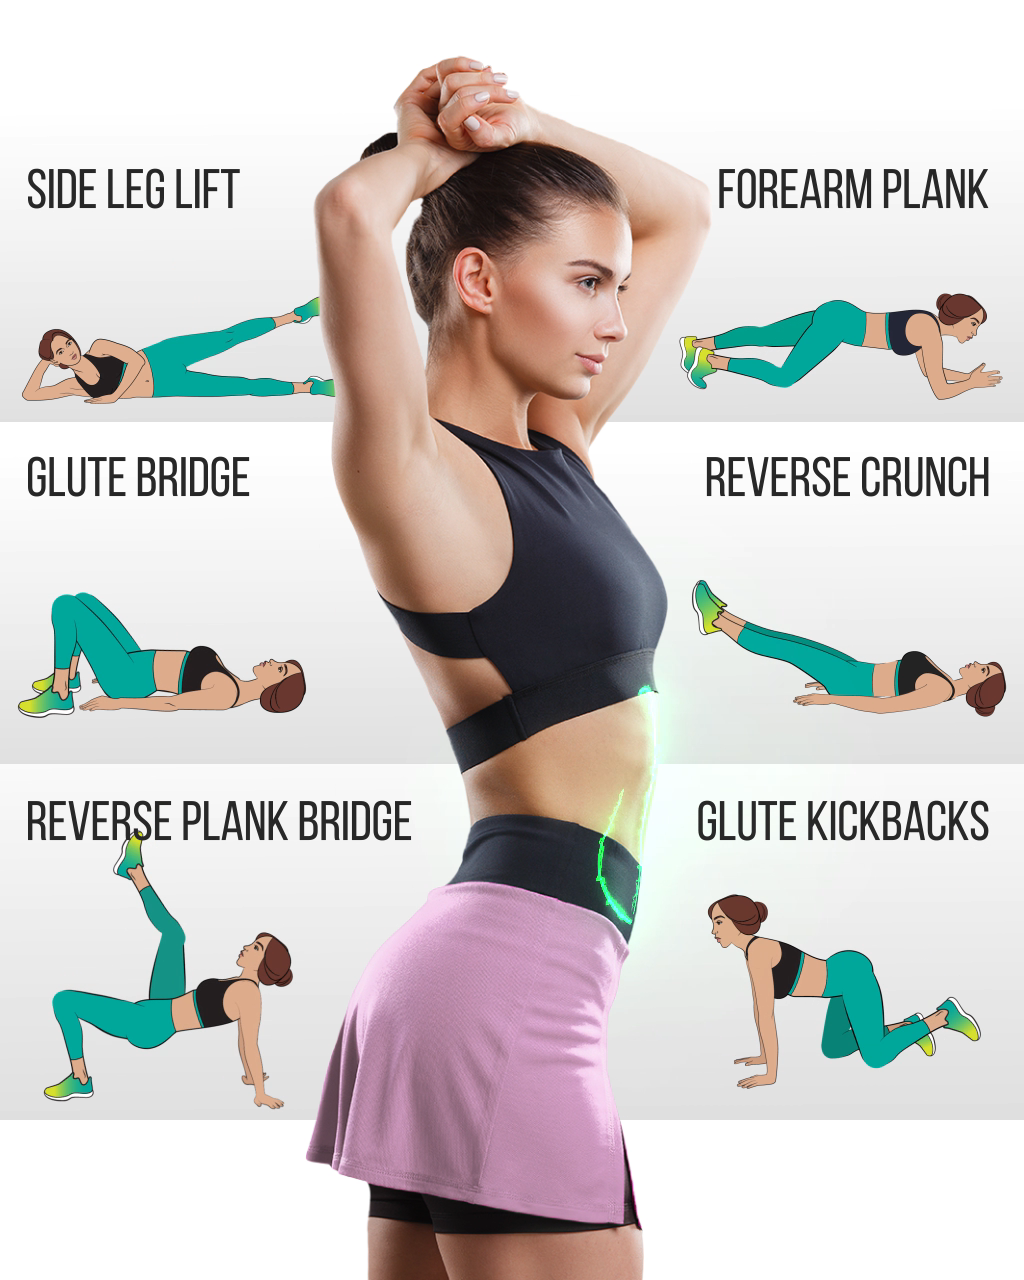 Transform Your Body with Effective Exercises at Home  #fitnessexercisesathome